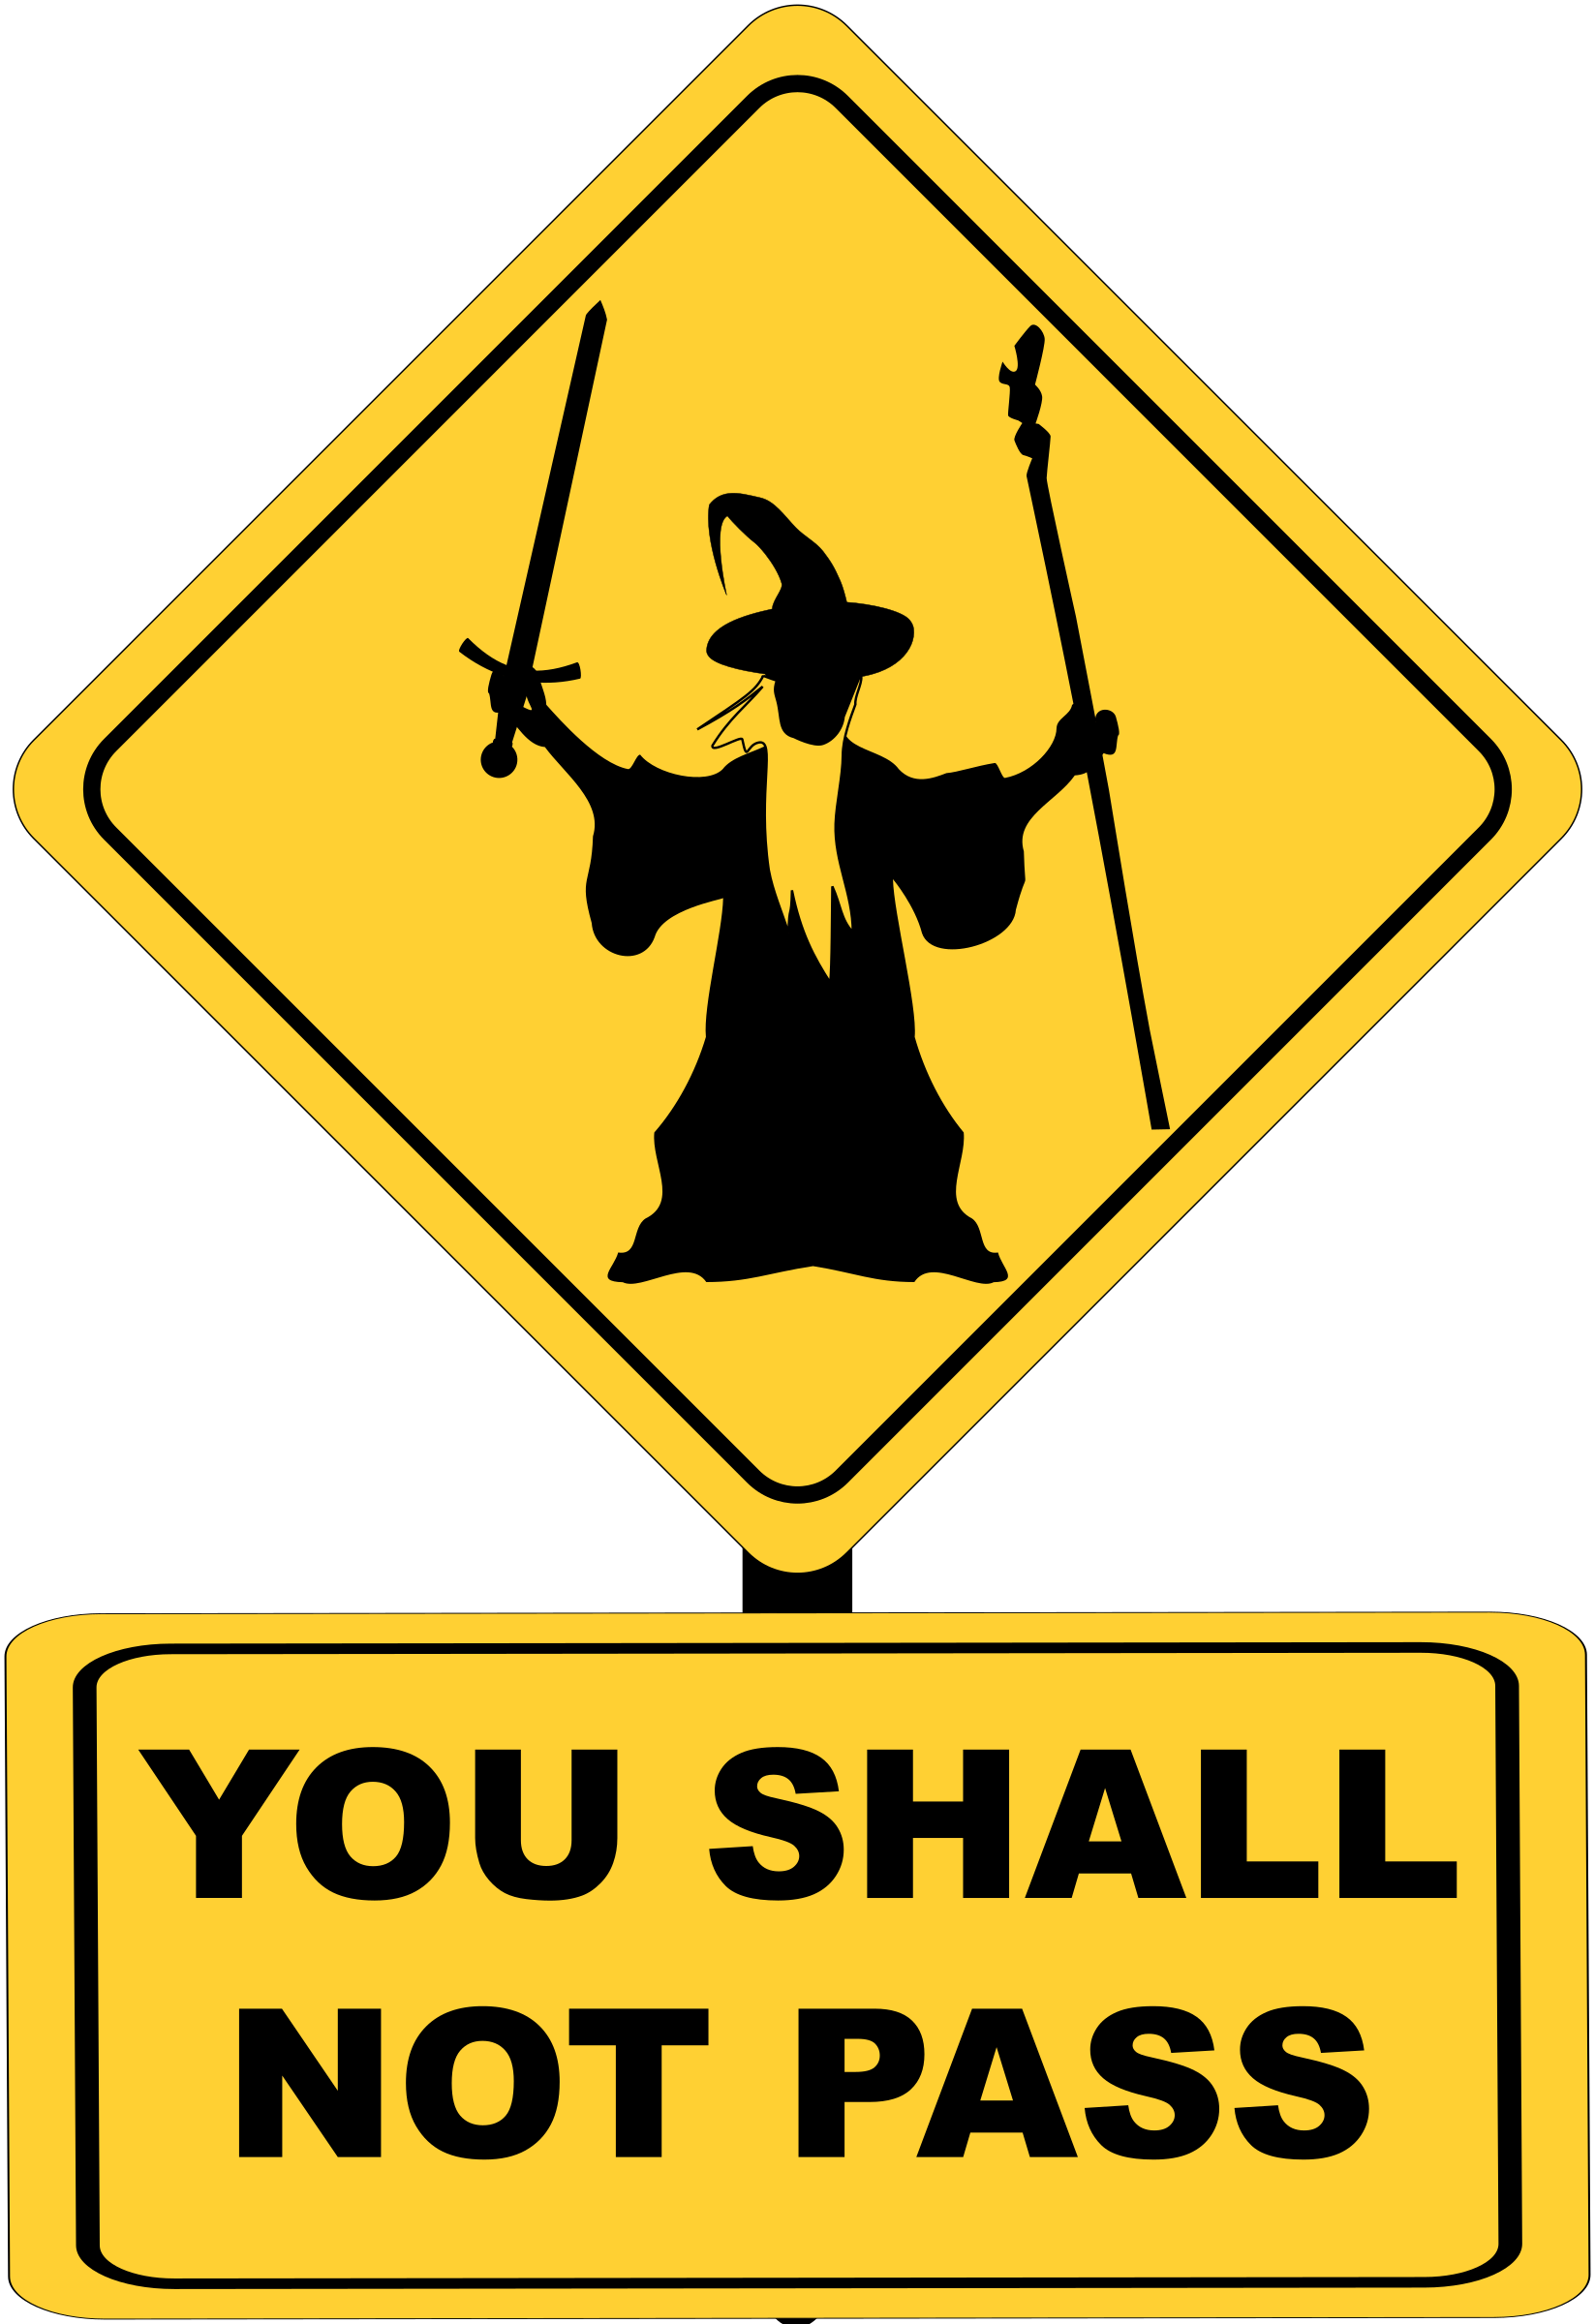 You shall not pass traffic sign by Juhele